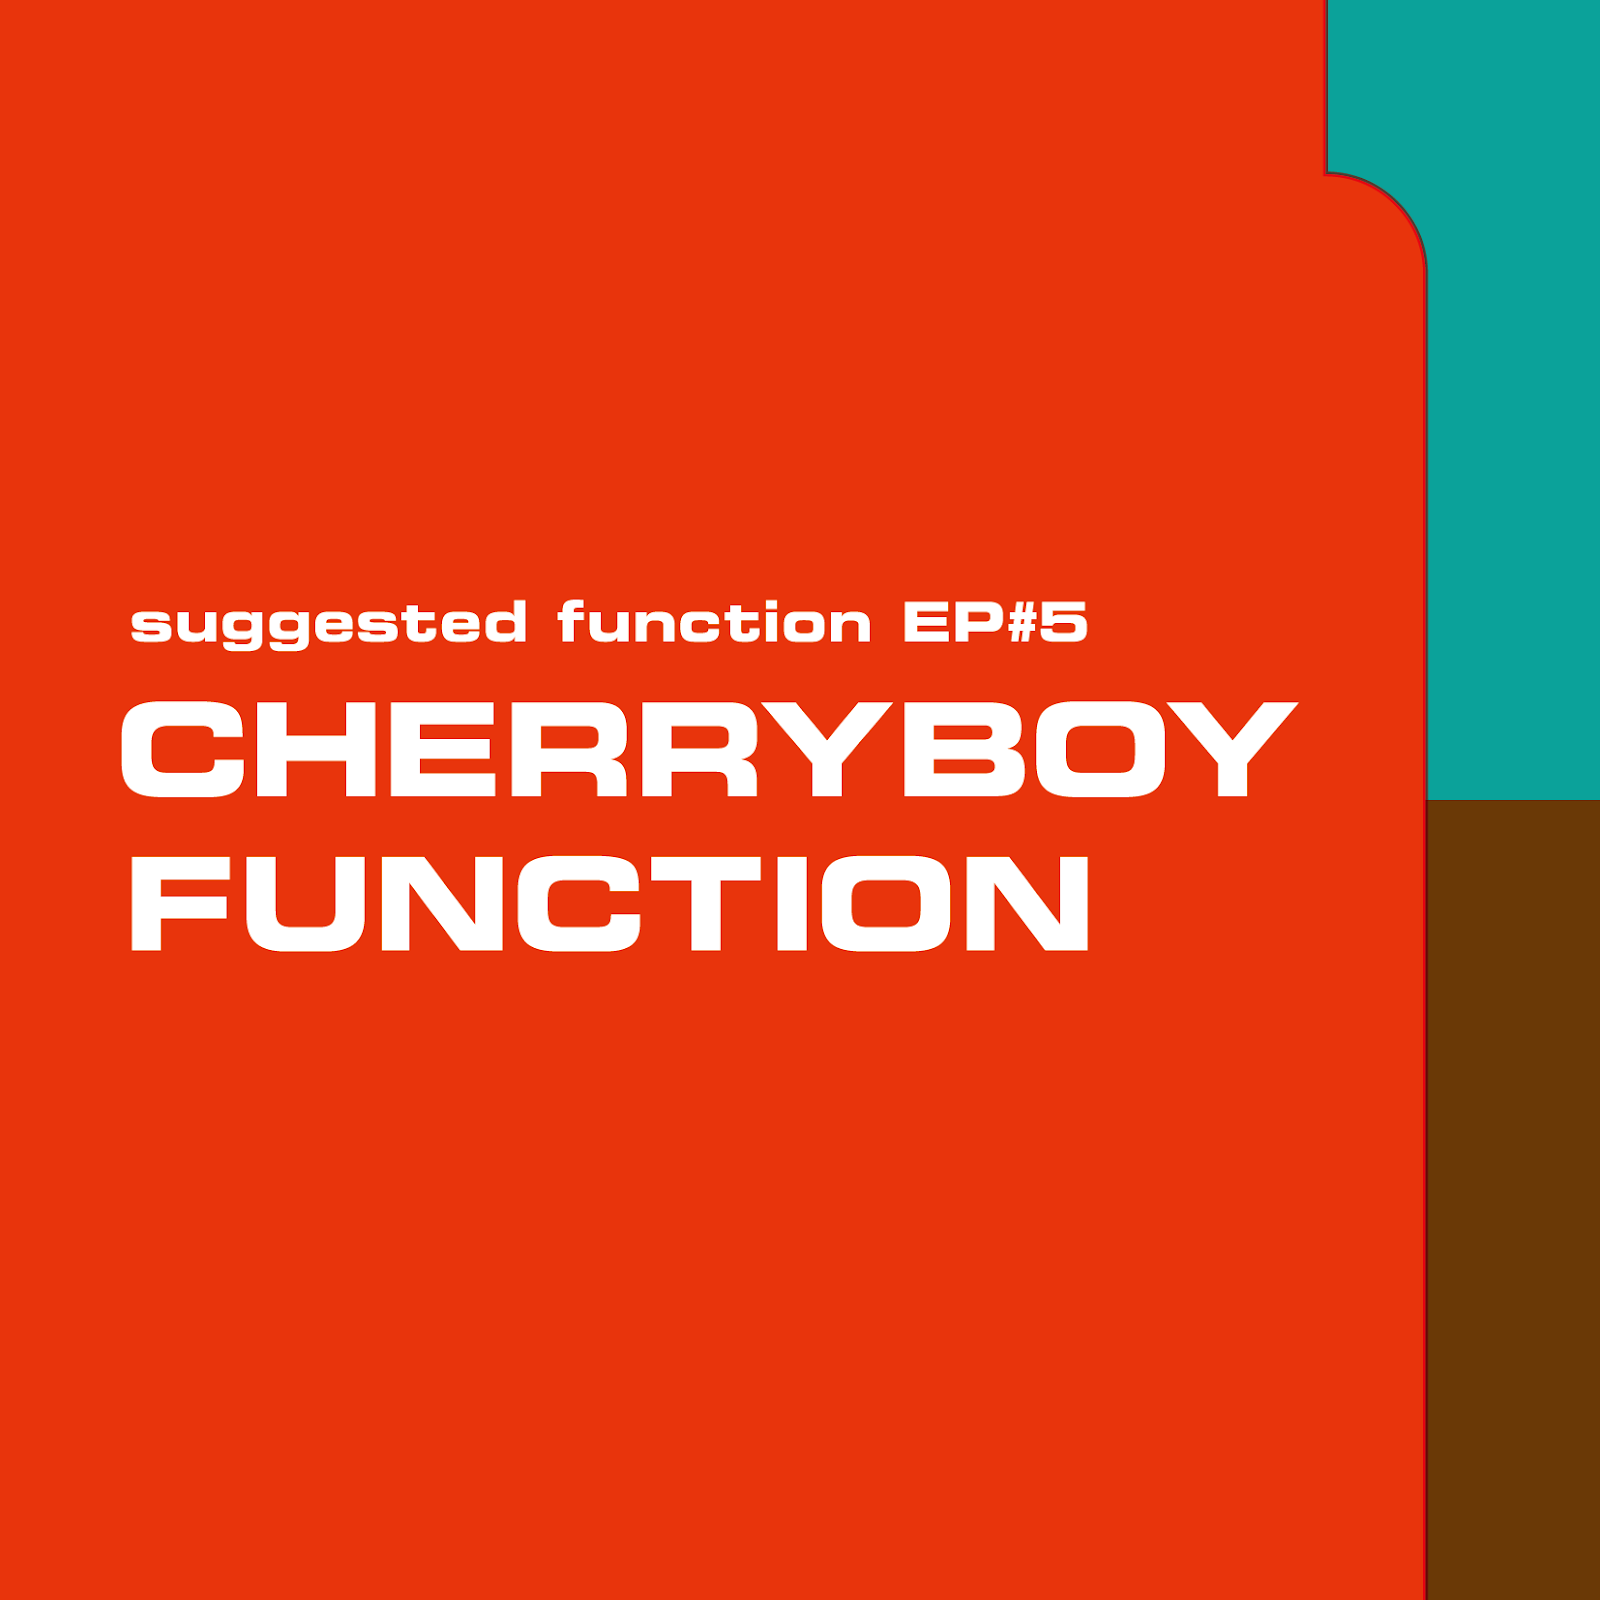 CHERRYBOY FUNCTION / suggested function EP#5